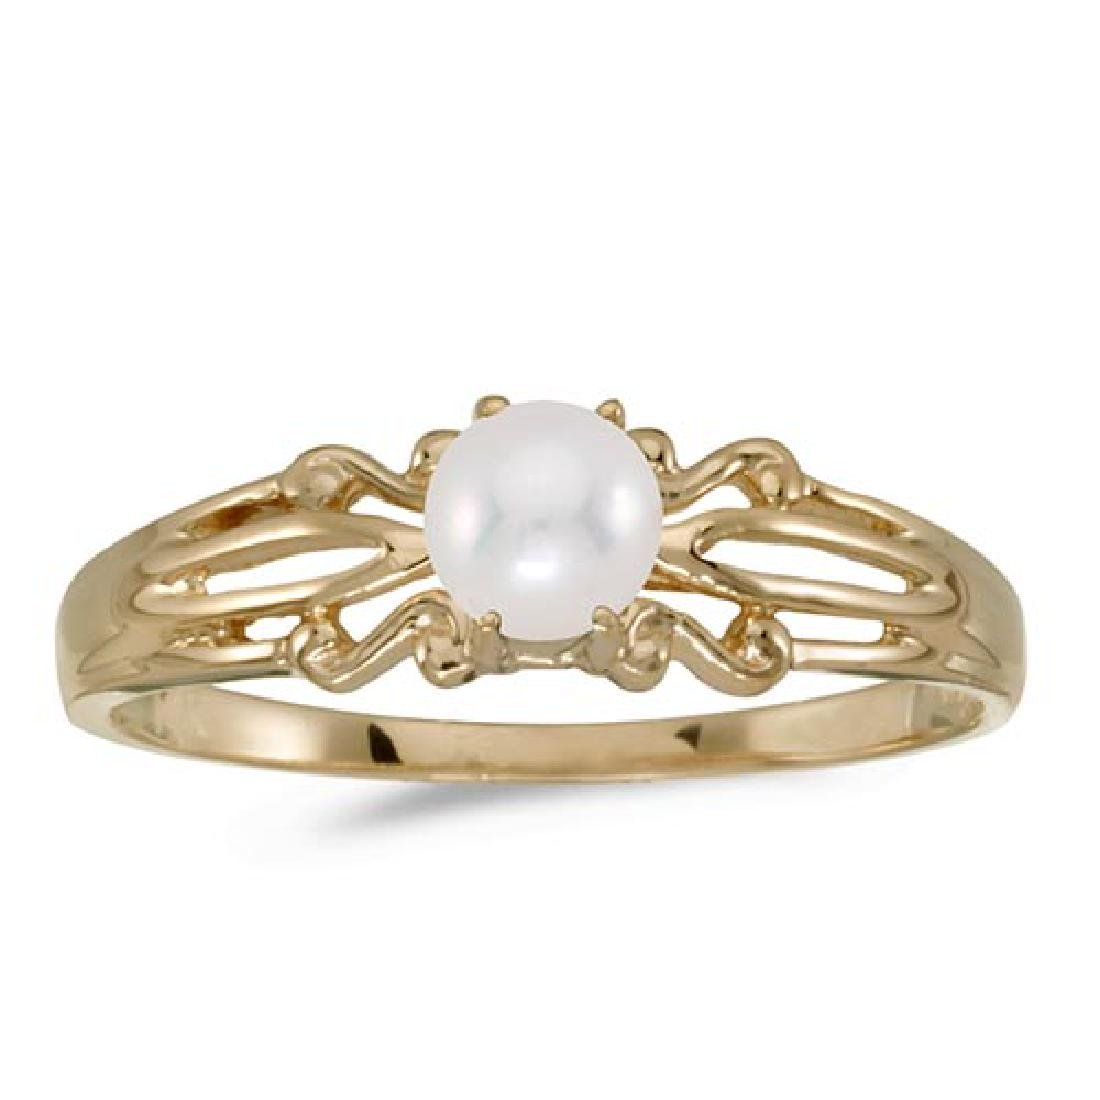 Certified 14k Yellow Gold Pearl Ring